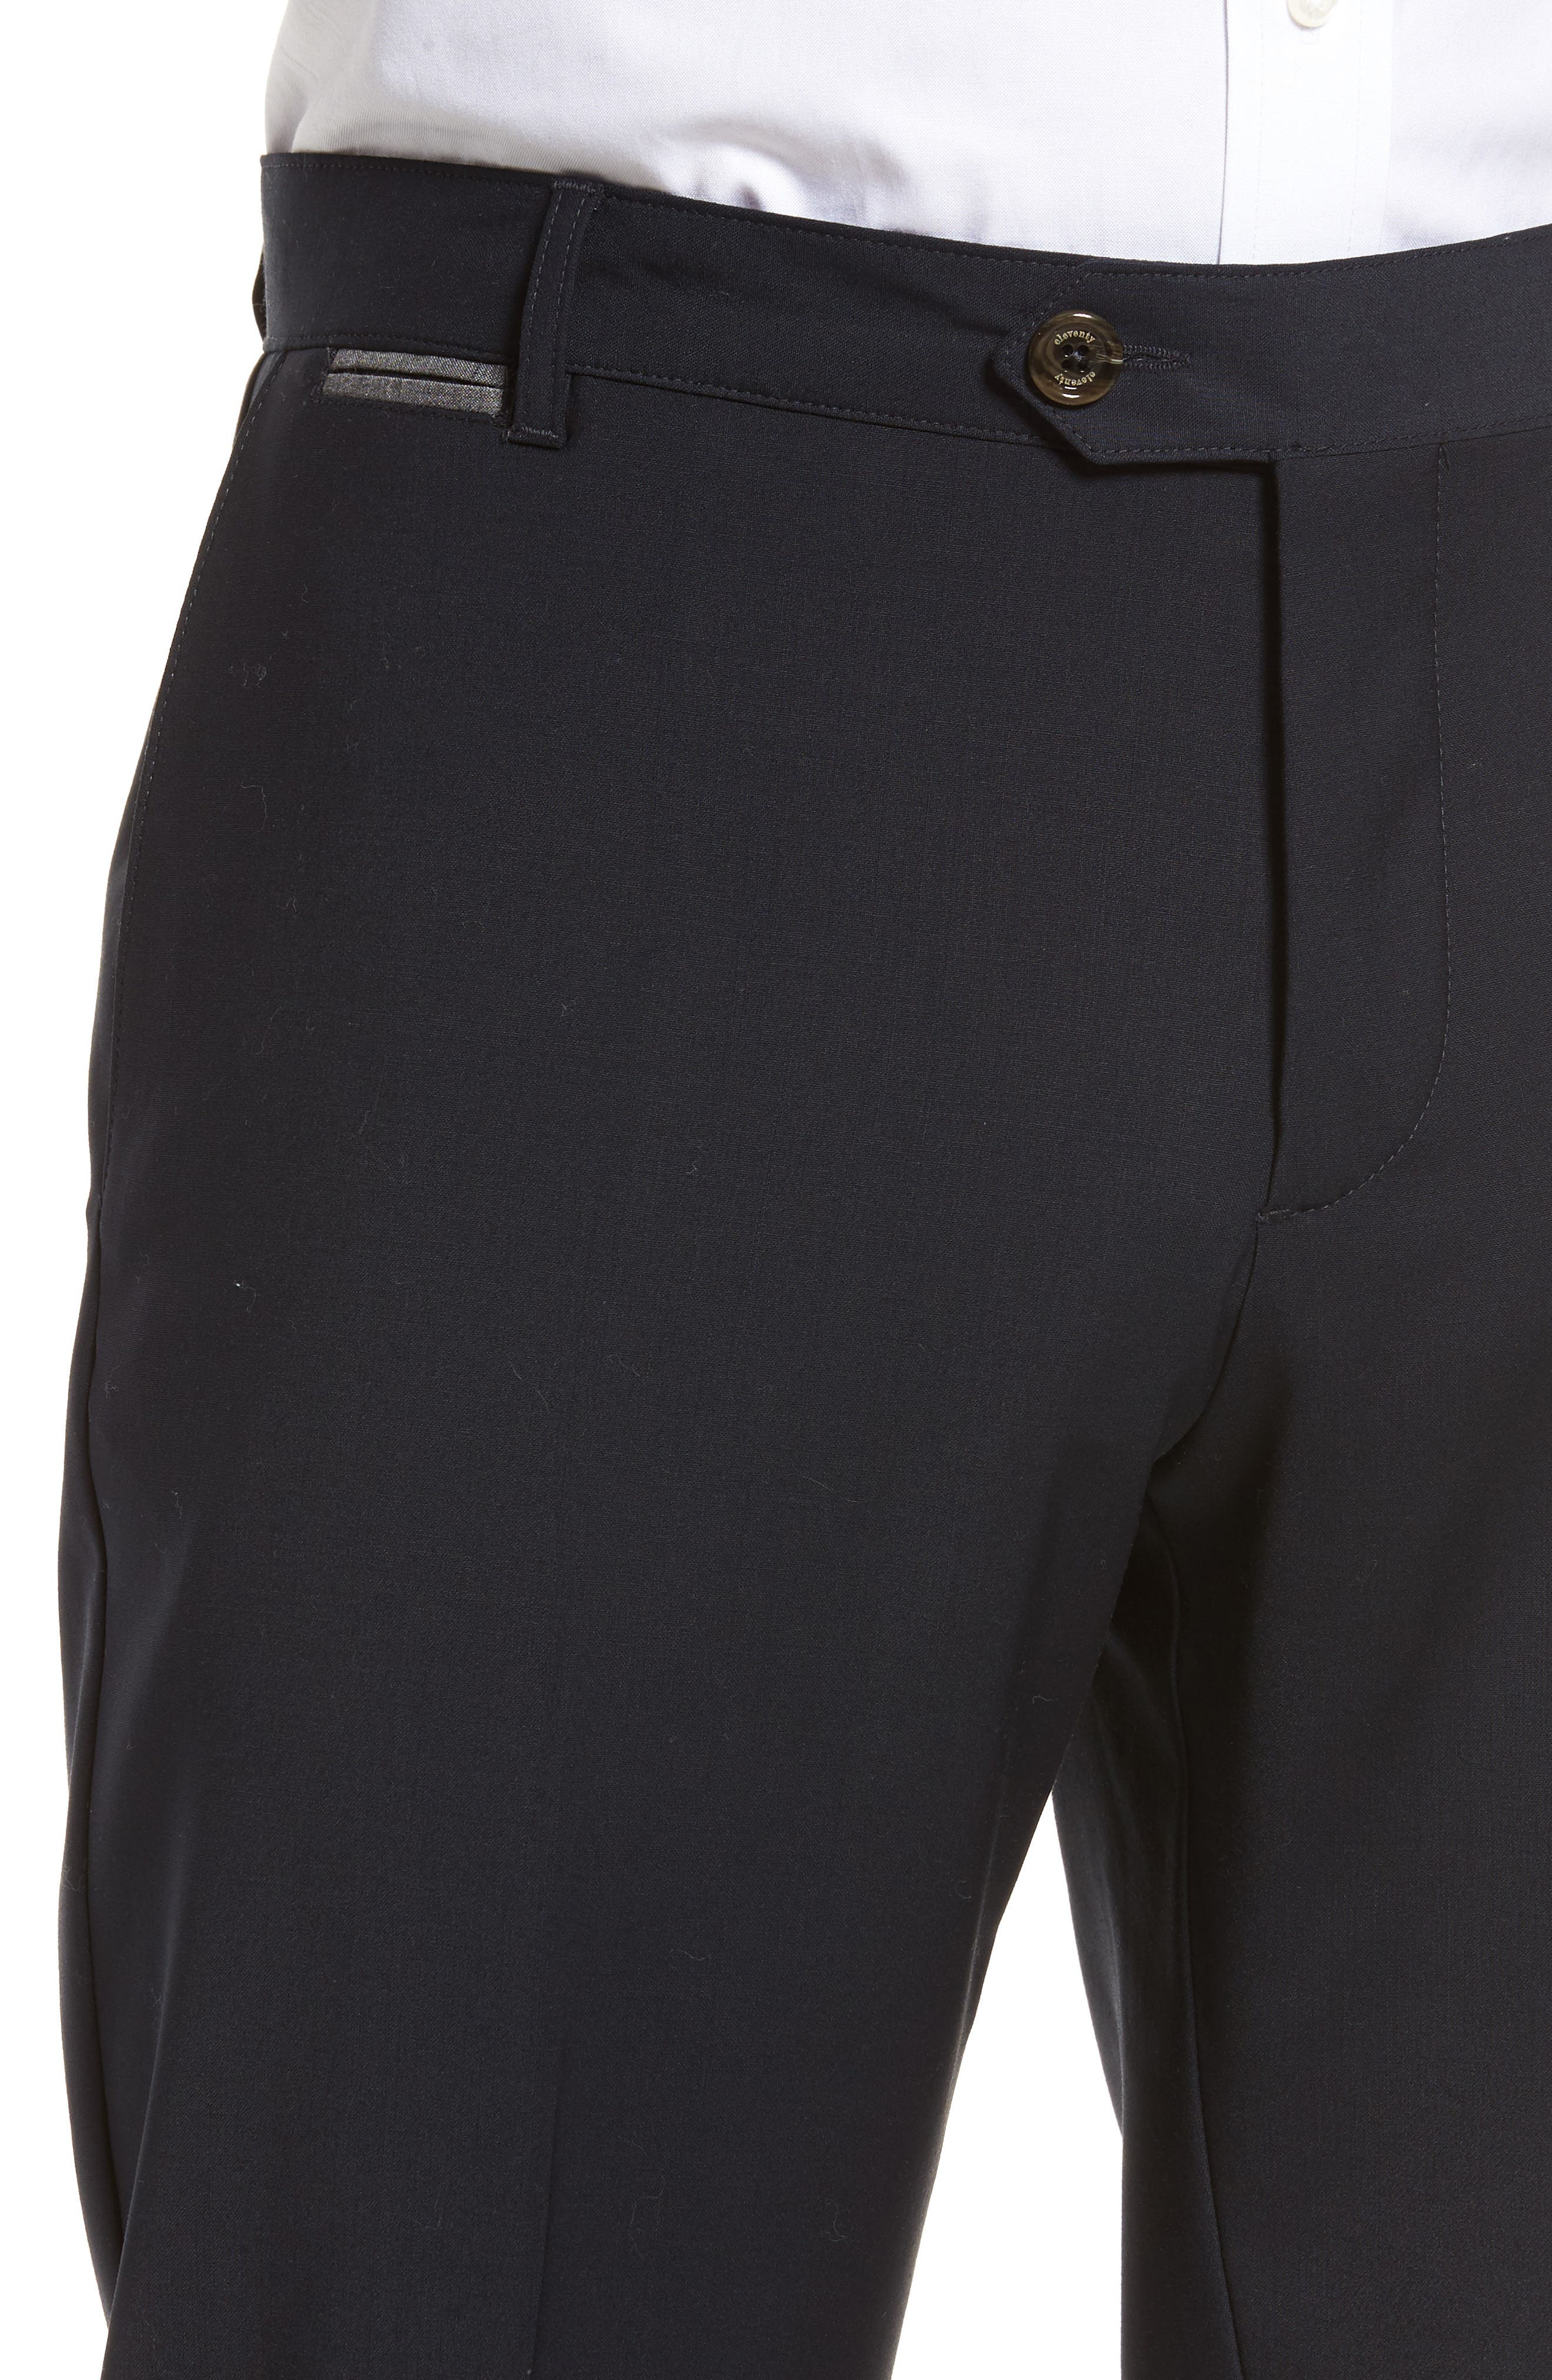 Flat Front Stretch Solid Wool Trousers,                             Alternate thumbnail 8, color,